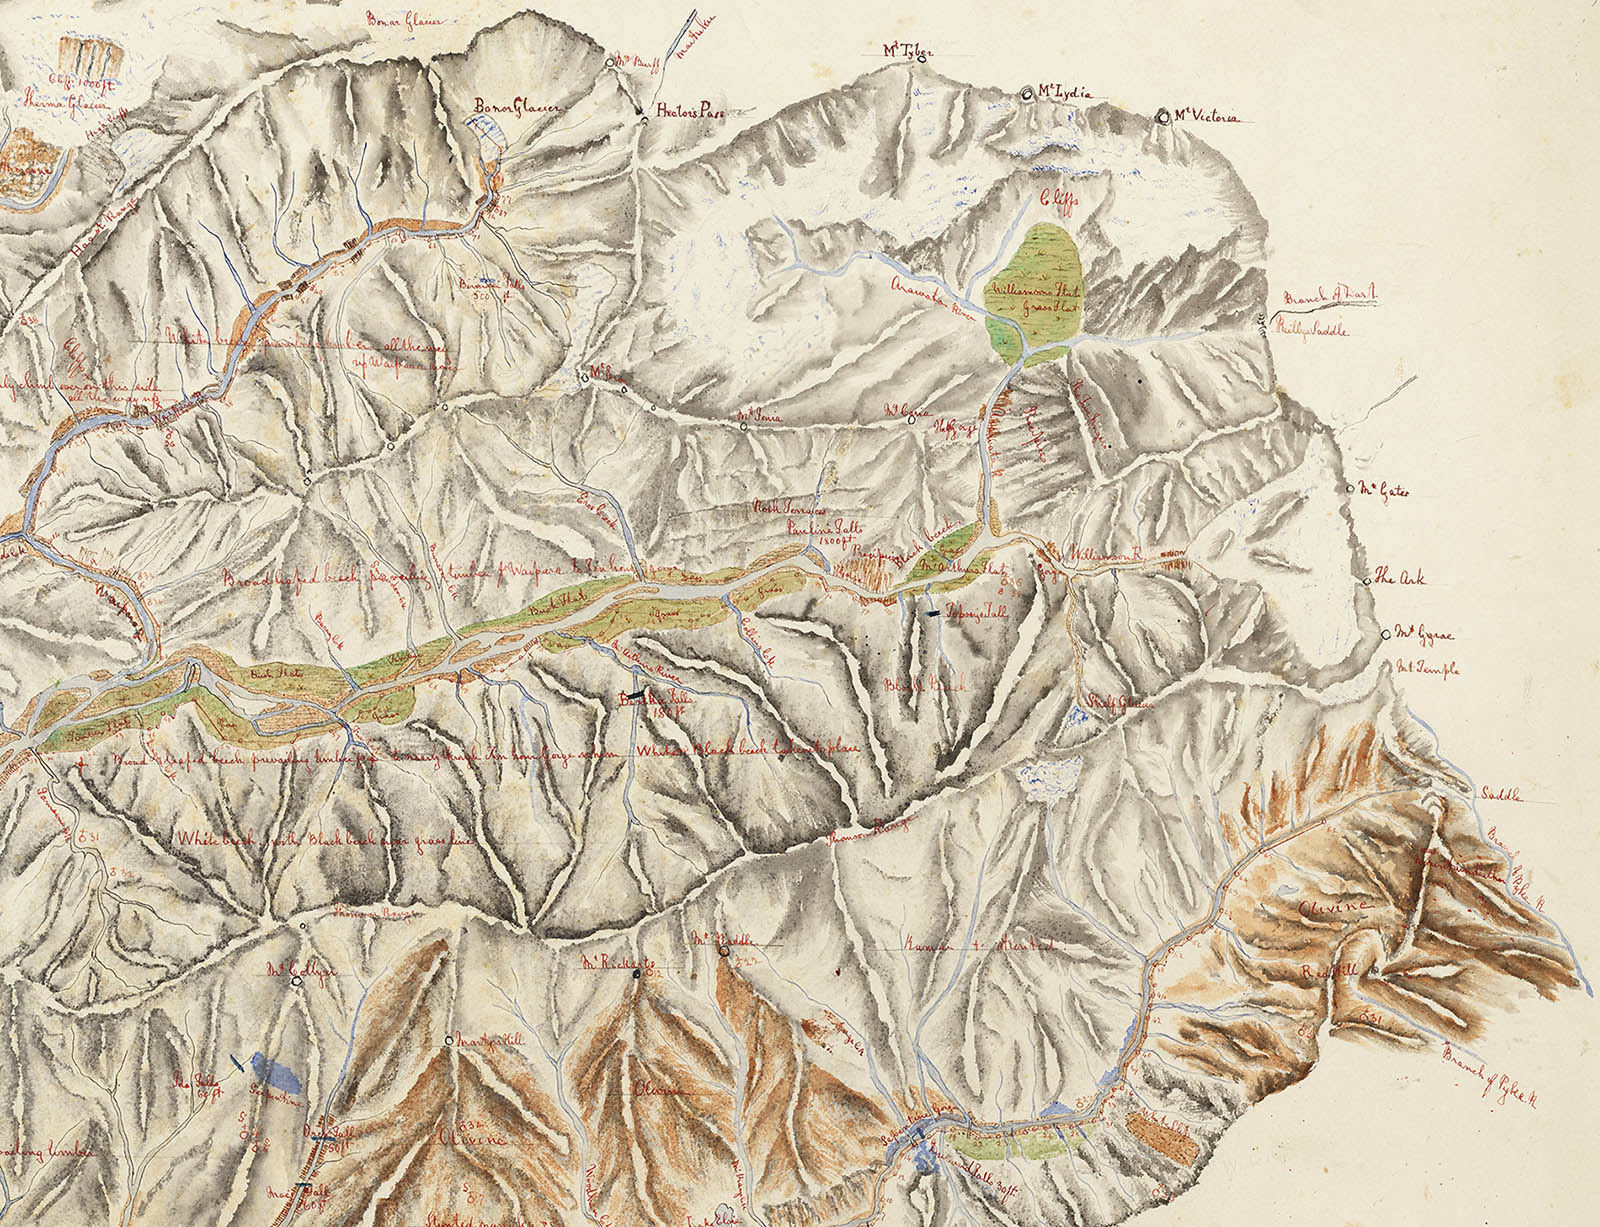 Portion of hand drawn map showing mountain range.